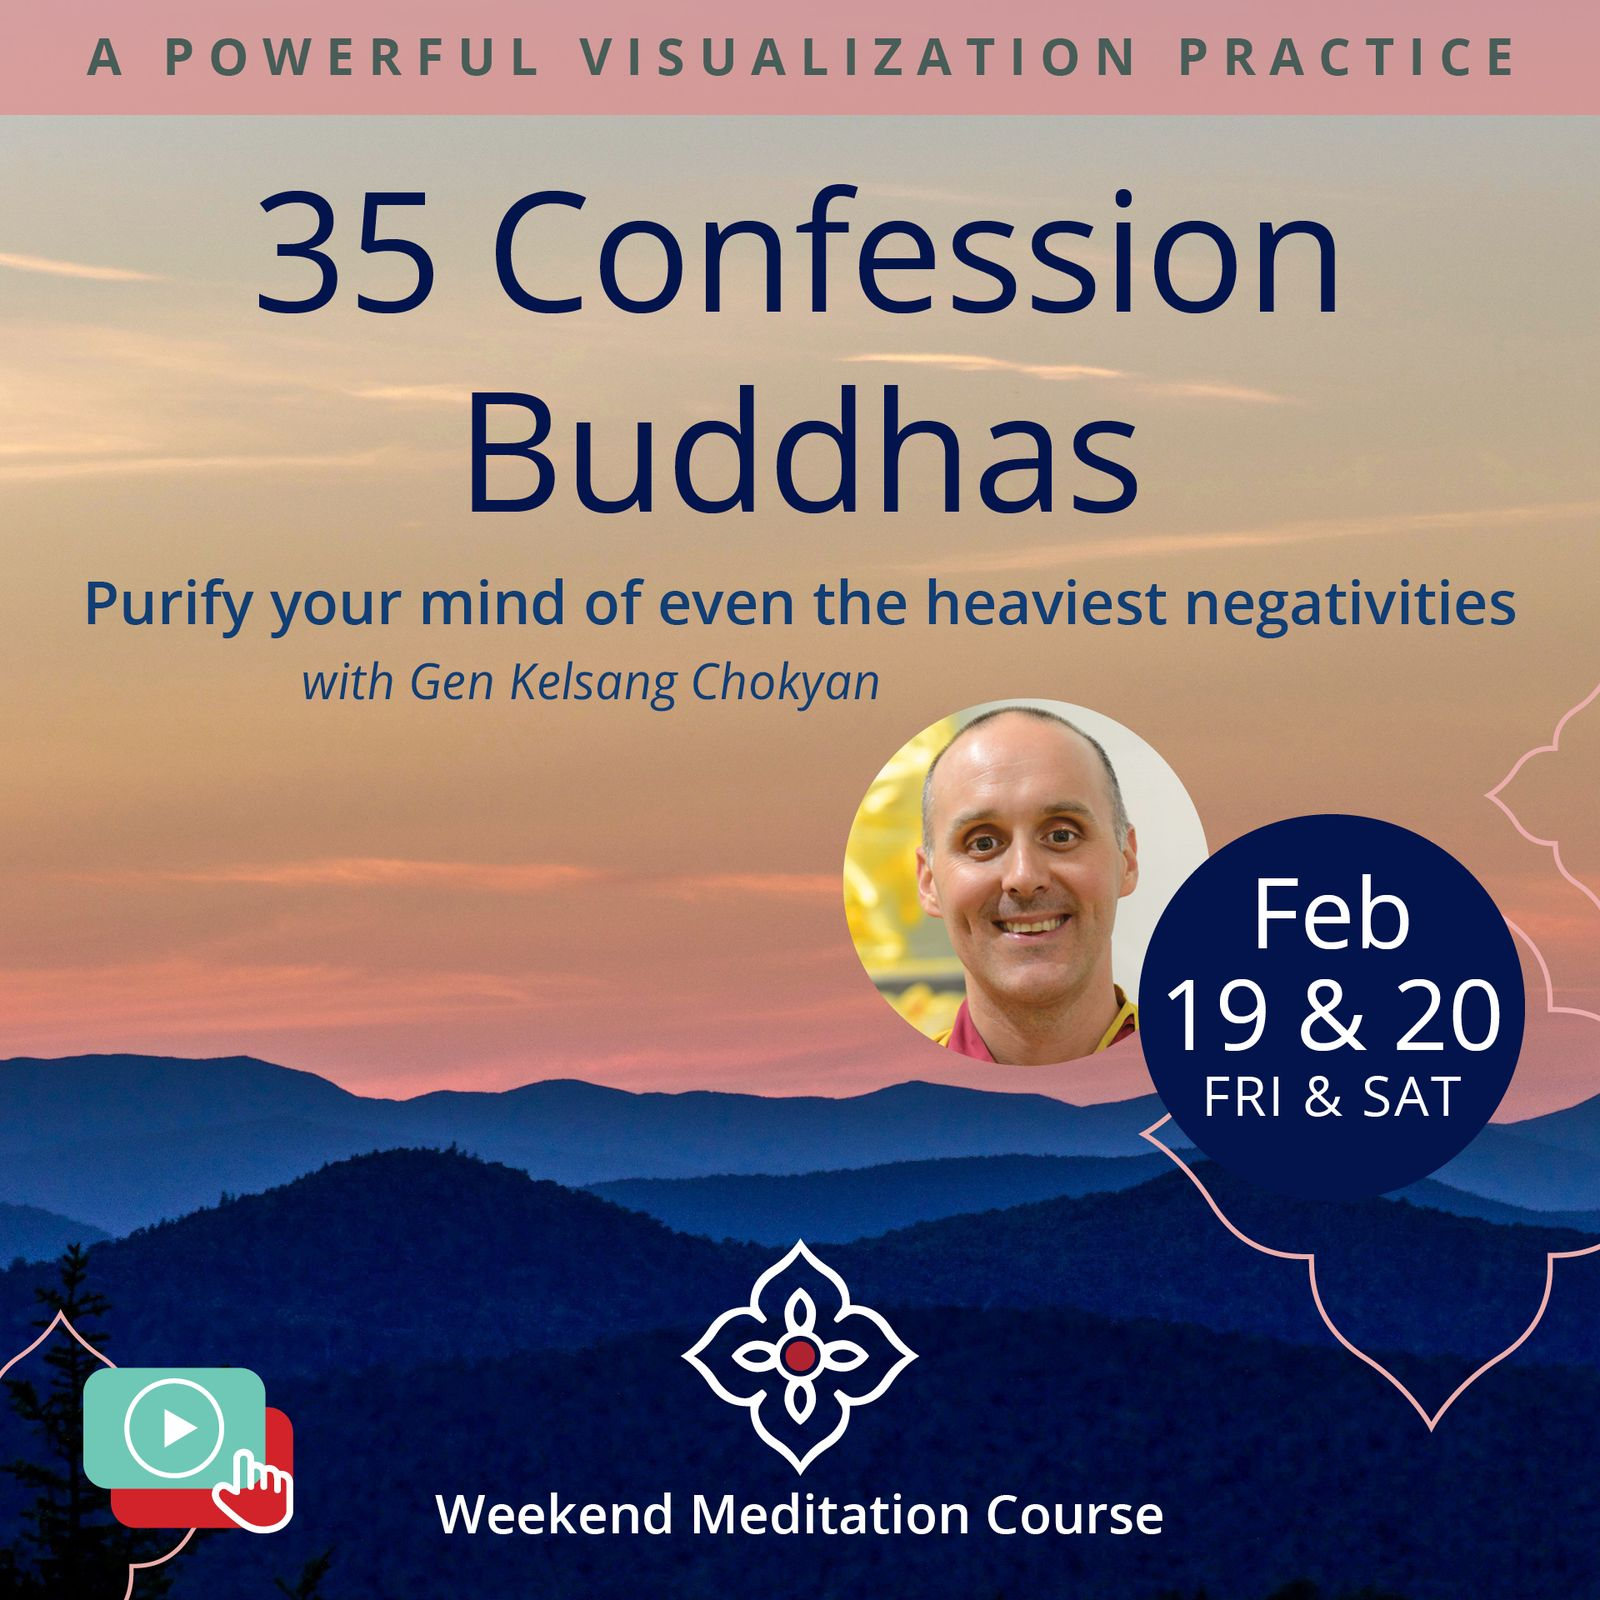 35 Confession Buddhas Purification Practice